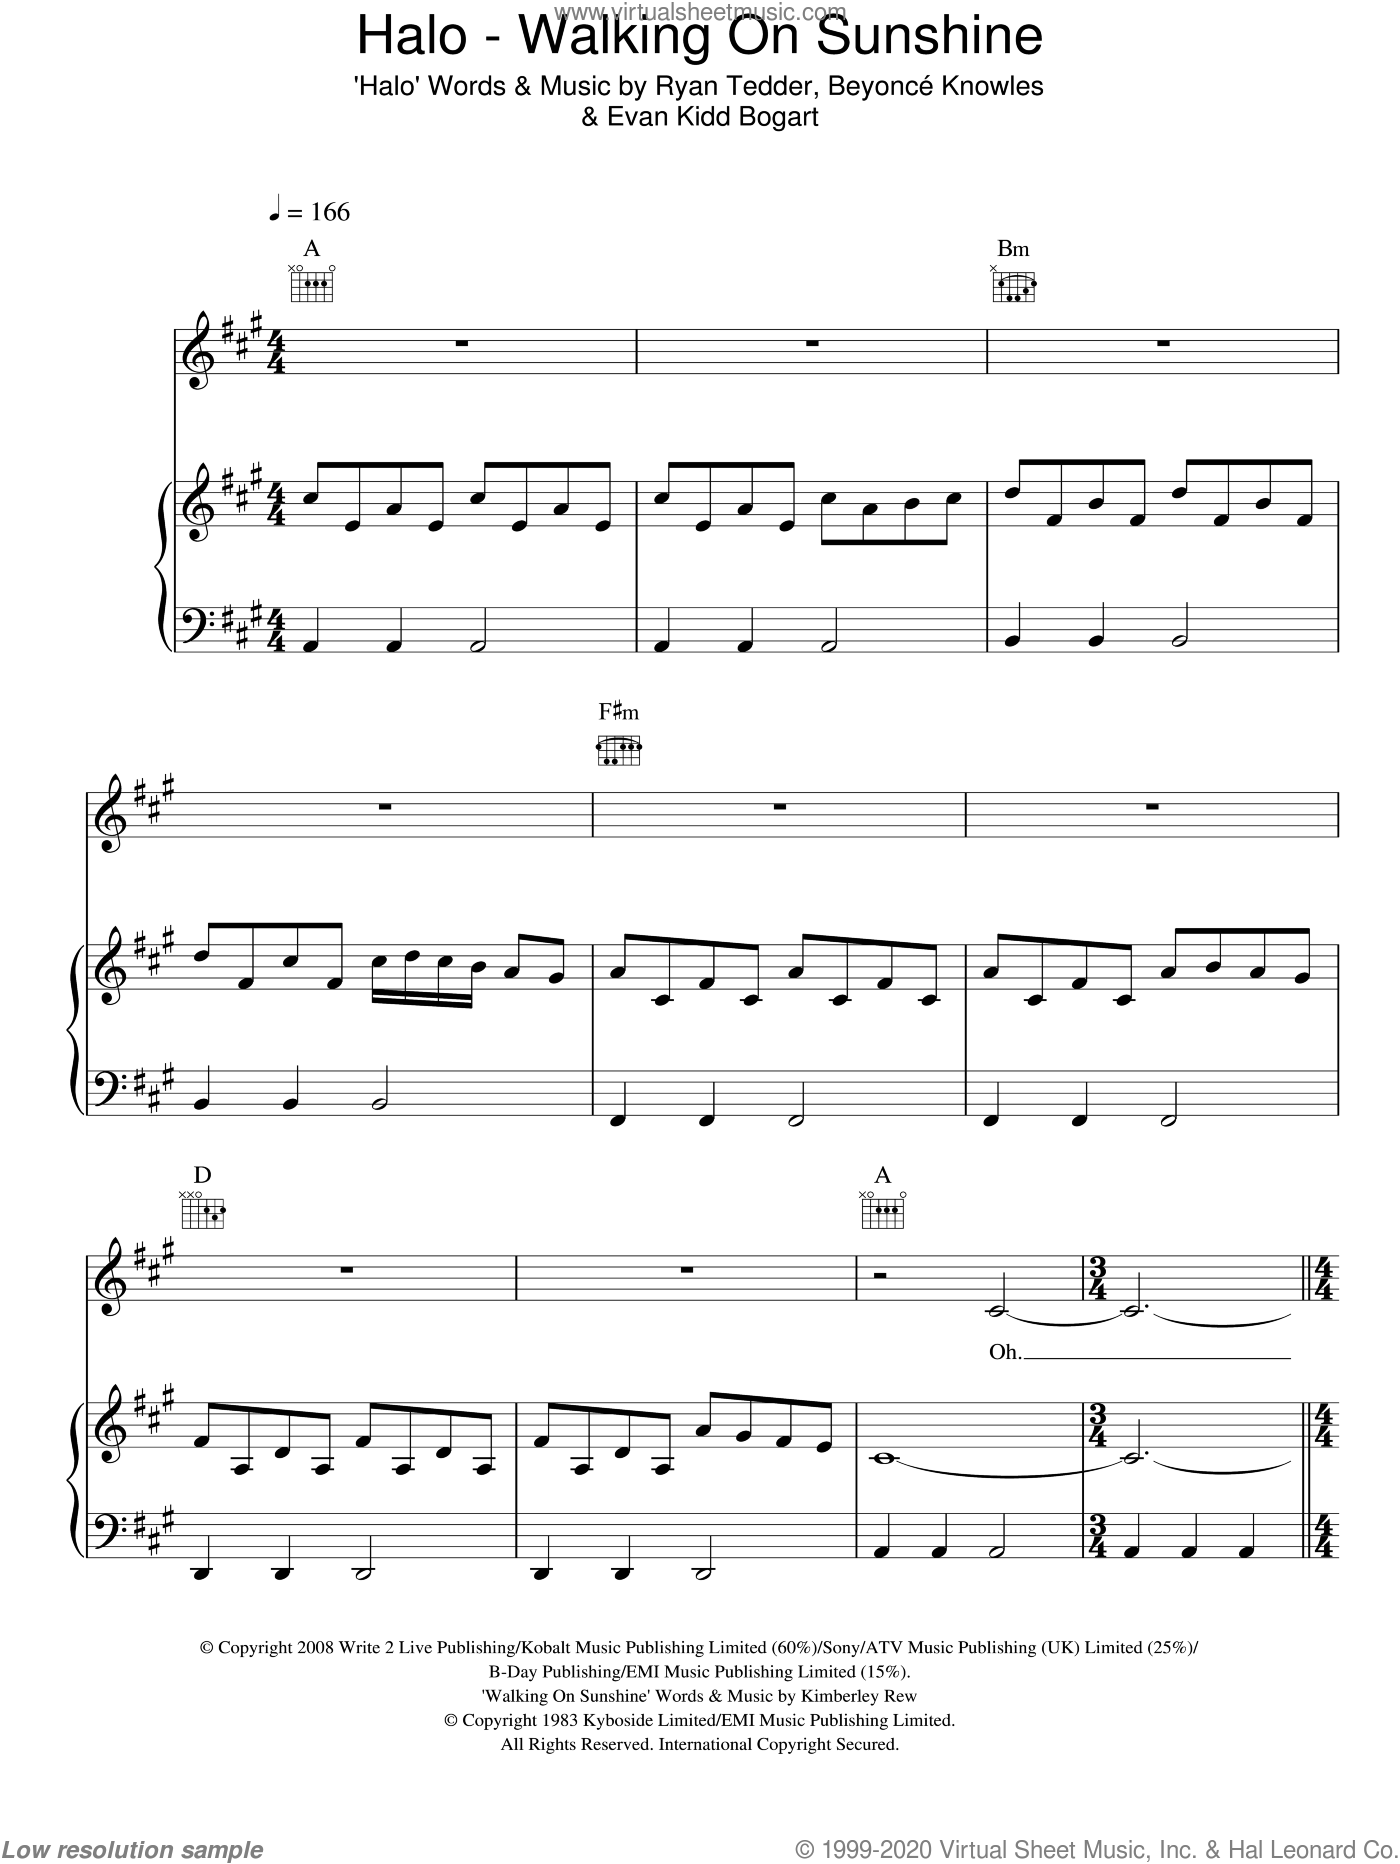 Halo / Walking On Sunshine sheet music for voice, piano or guitar by Ryan Tedder